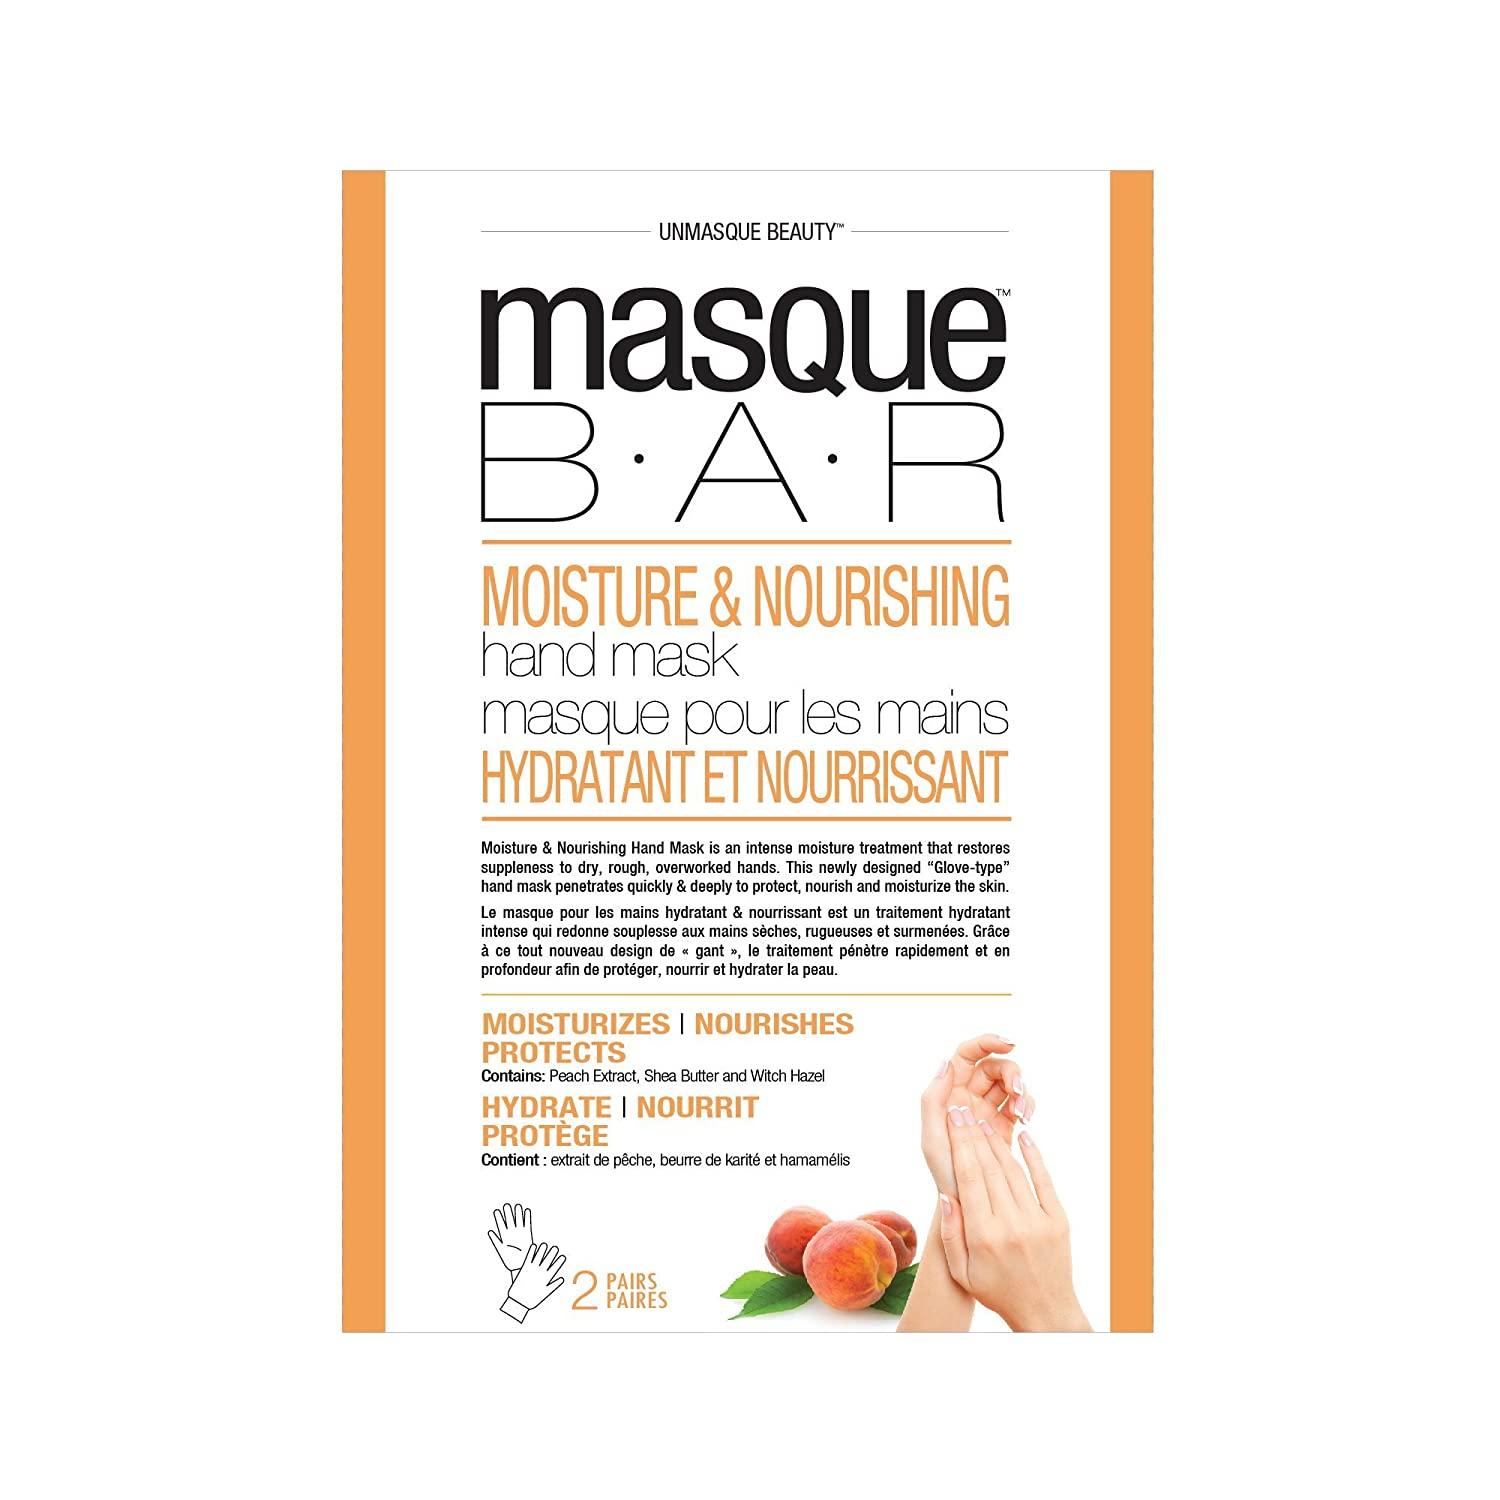 masque BAR Intensive Moisturizing Foot Mask - Complete Softening Masks to Remove Calluses, 2-set Look Beauty Inc